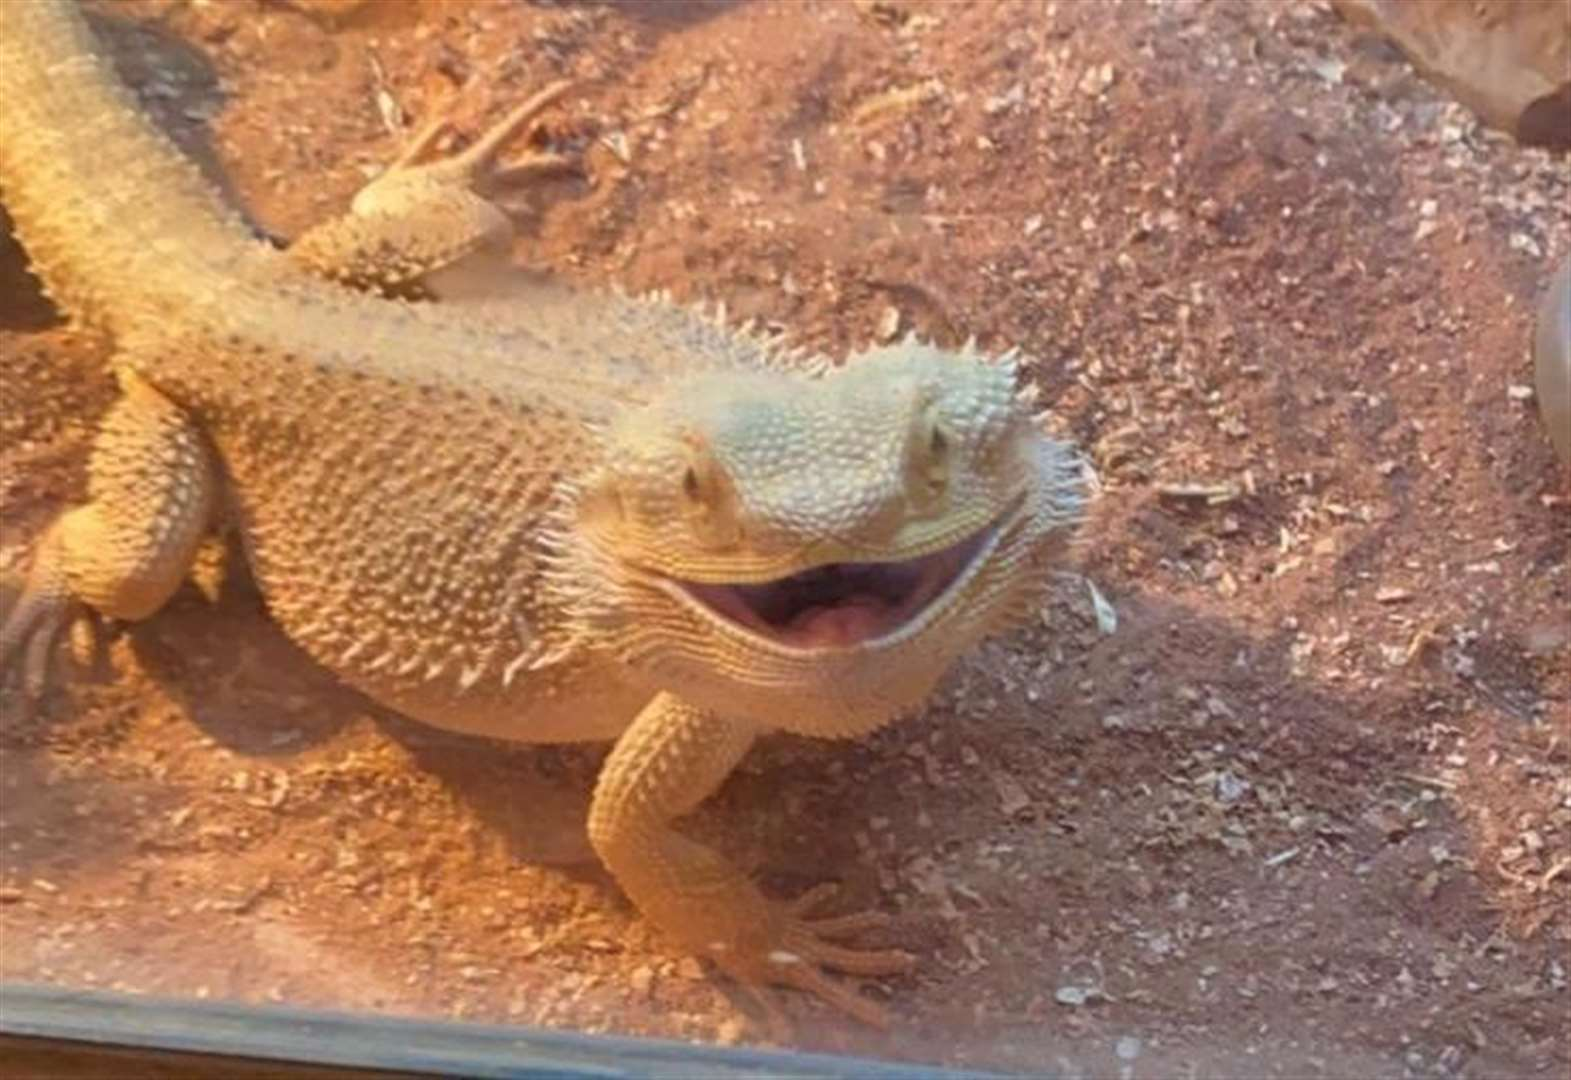 Boy's lizard on the loose after escape